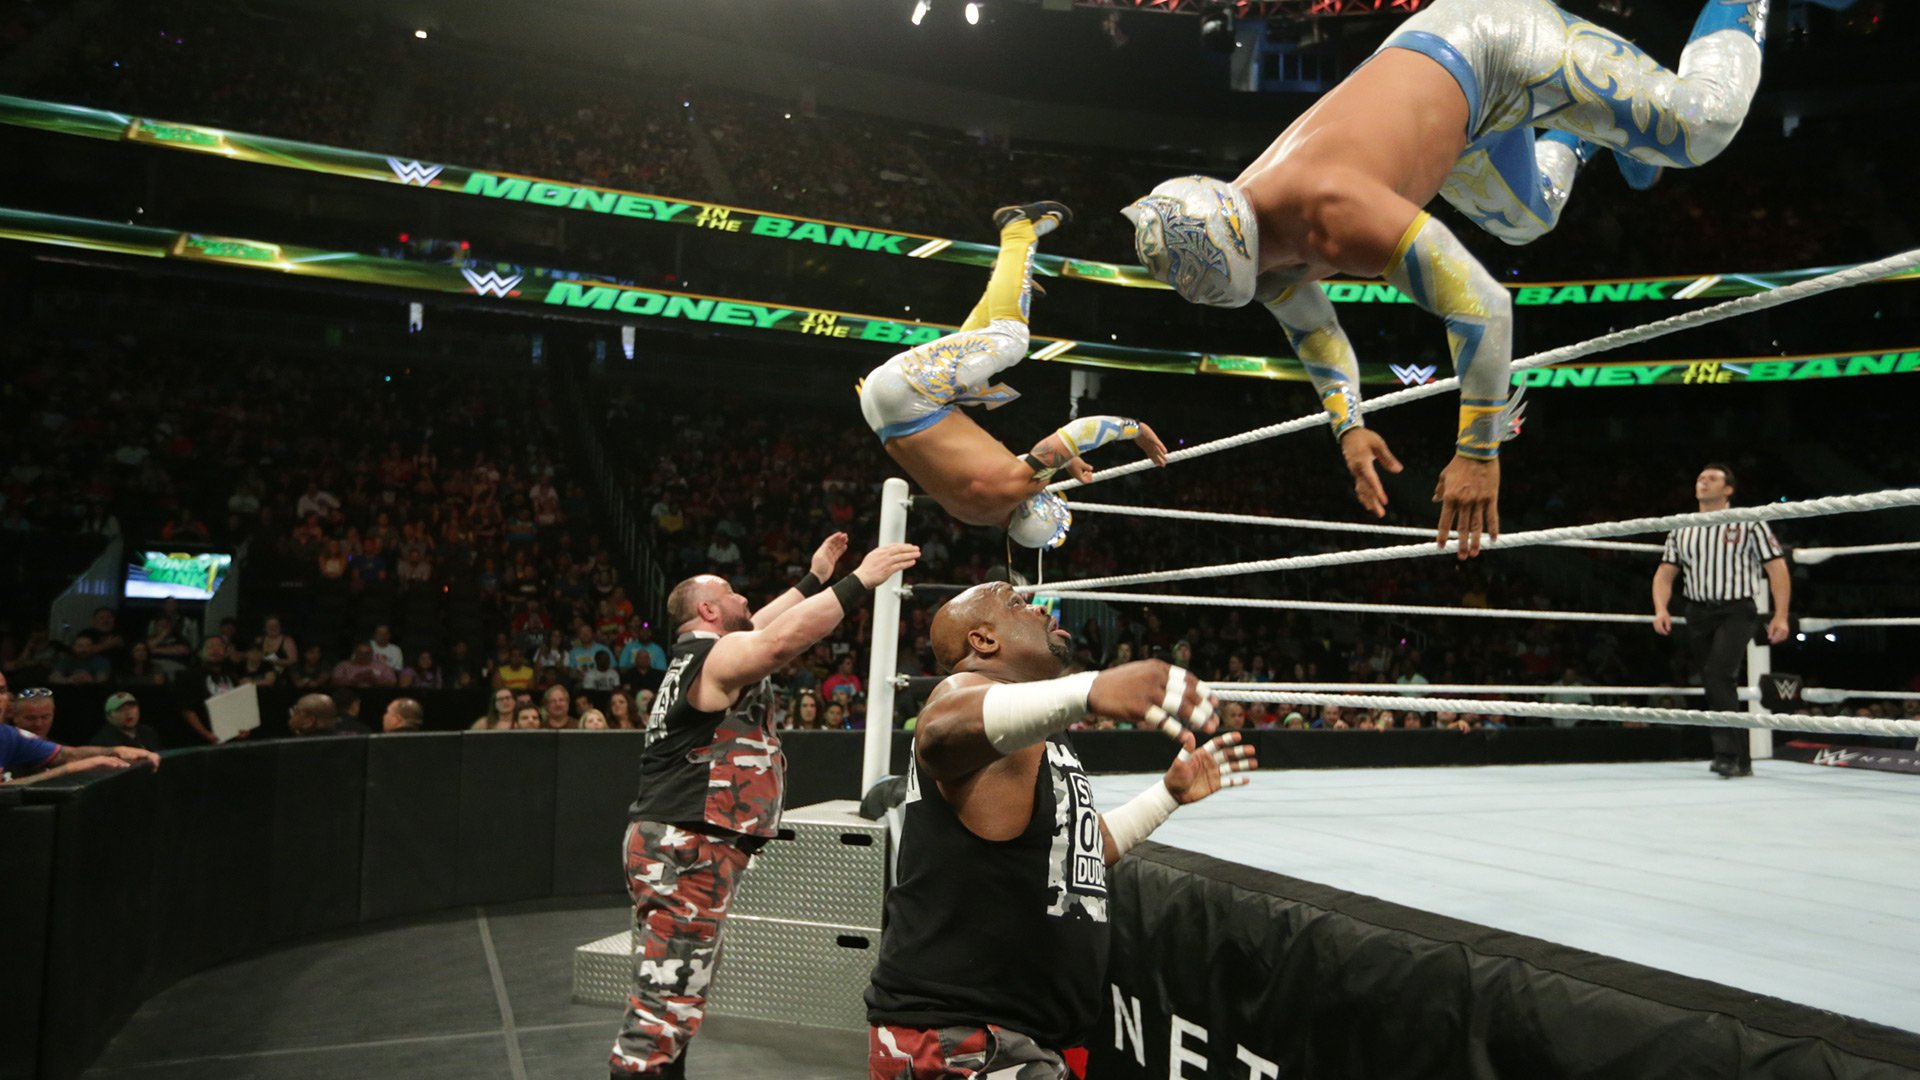 WWE Network: Lucha Dragons vs. The Dudley Boyz: WWE Money in the Bank 2016 Kickoff